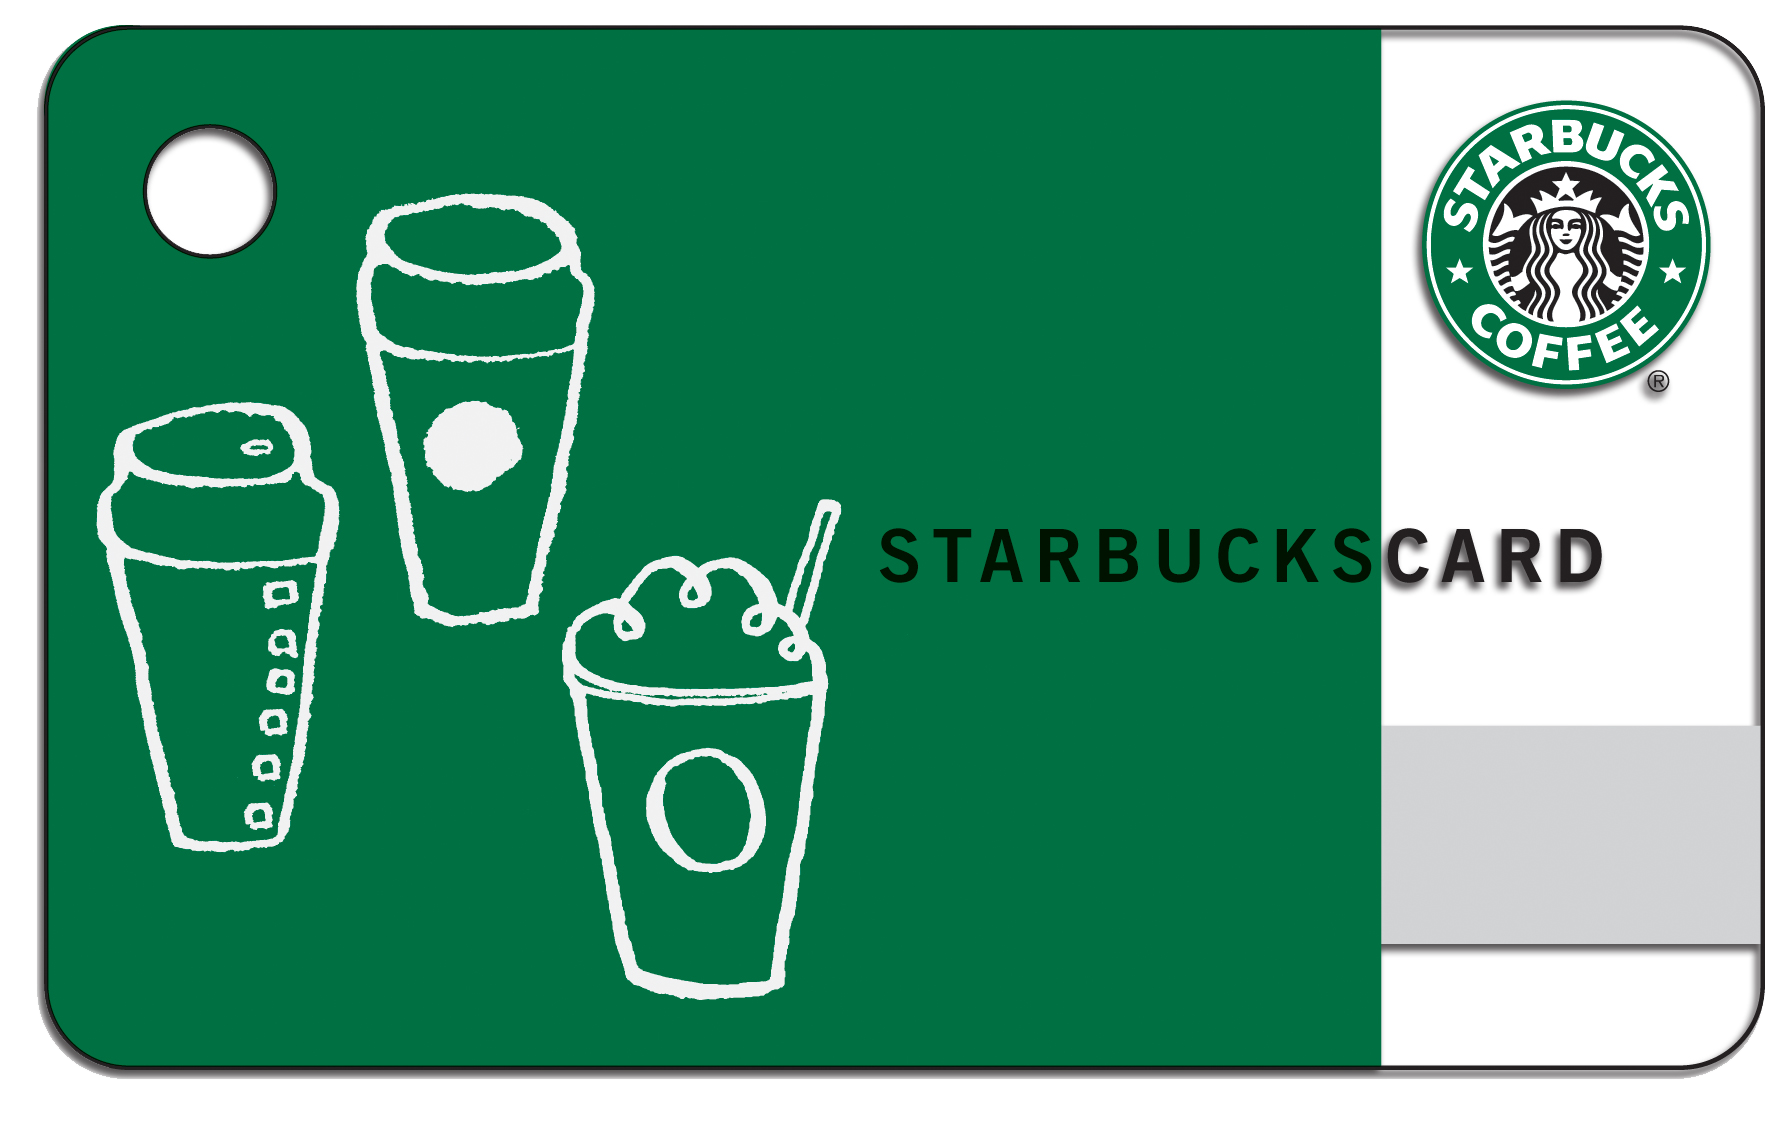 And Gift Discounts Starbucks Allowances Card Voucher PNG Image